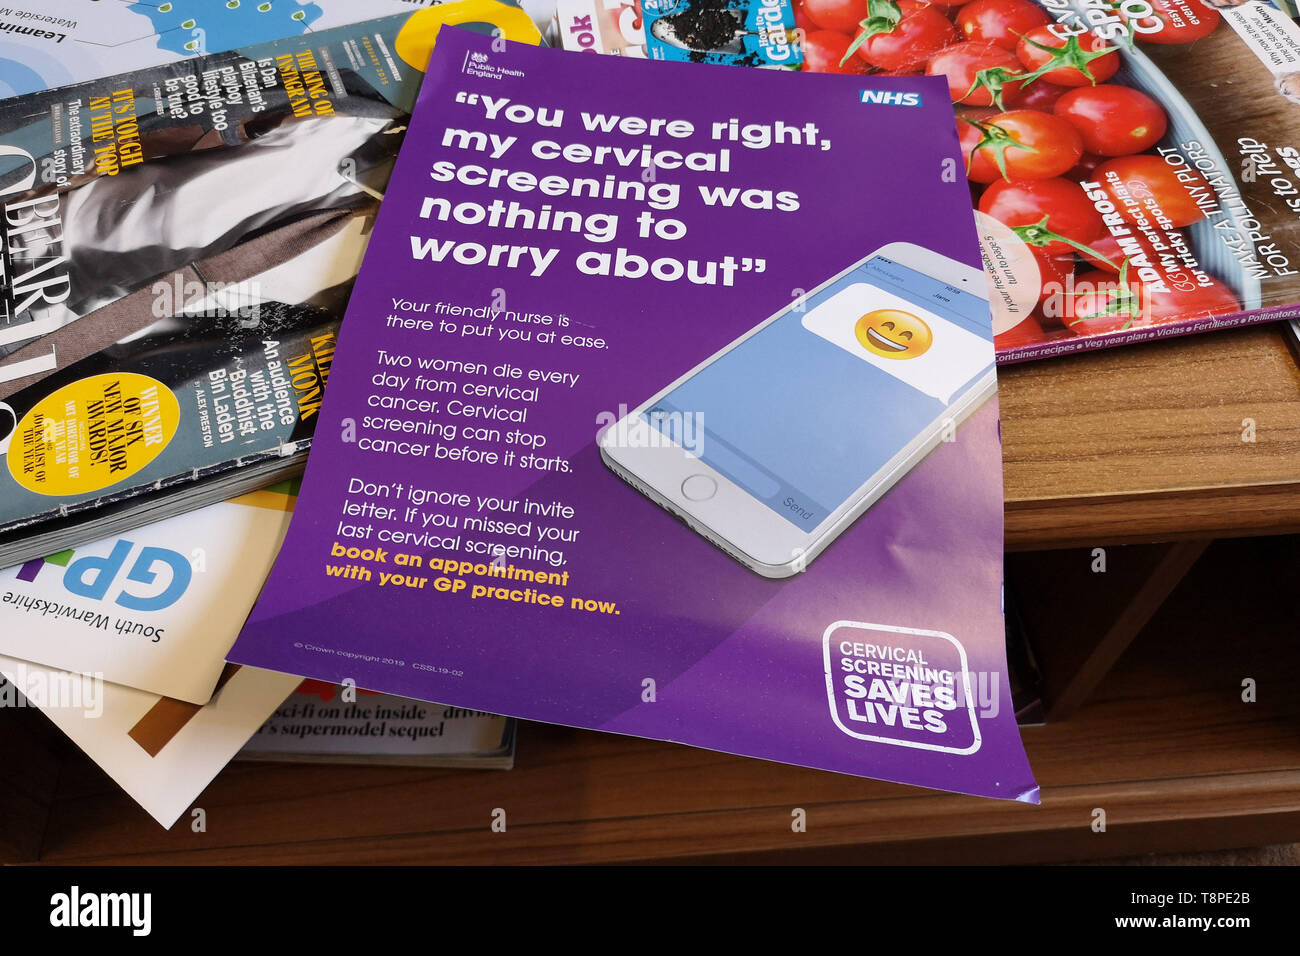 A leaflet with advice for patients about Cervical Screening seen in an NHS local doctors surgery waiting room in Warwickshire, UK, On May 14, 2019. Stock Photo